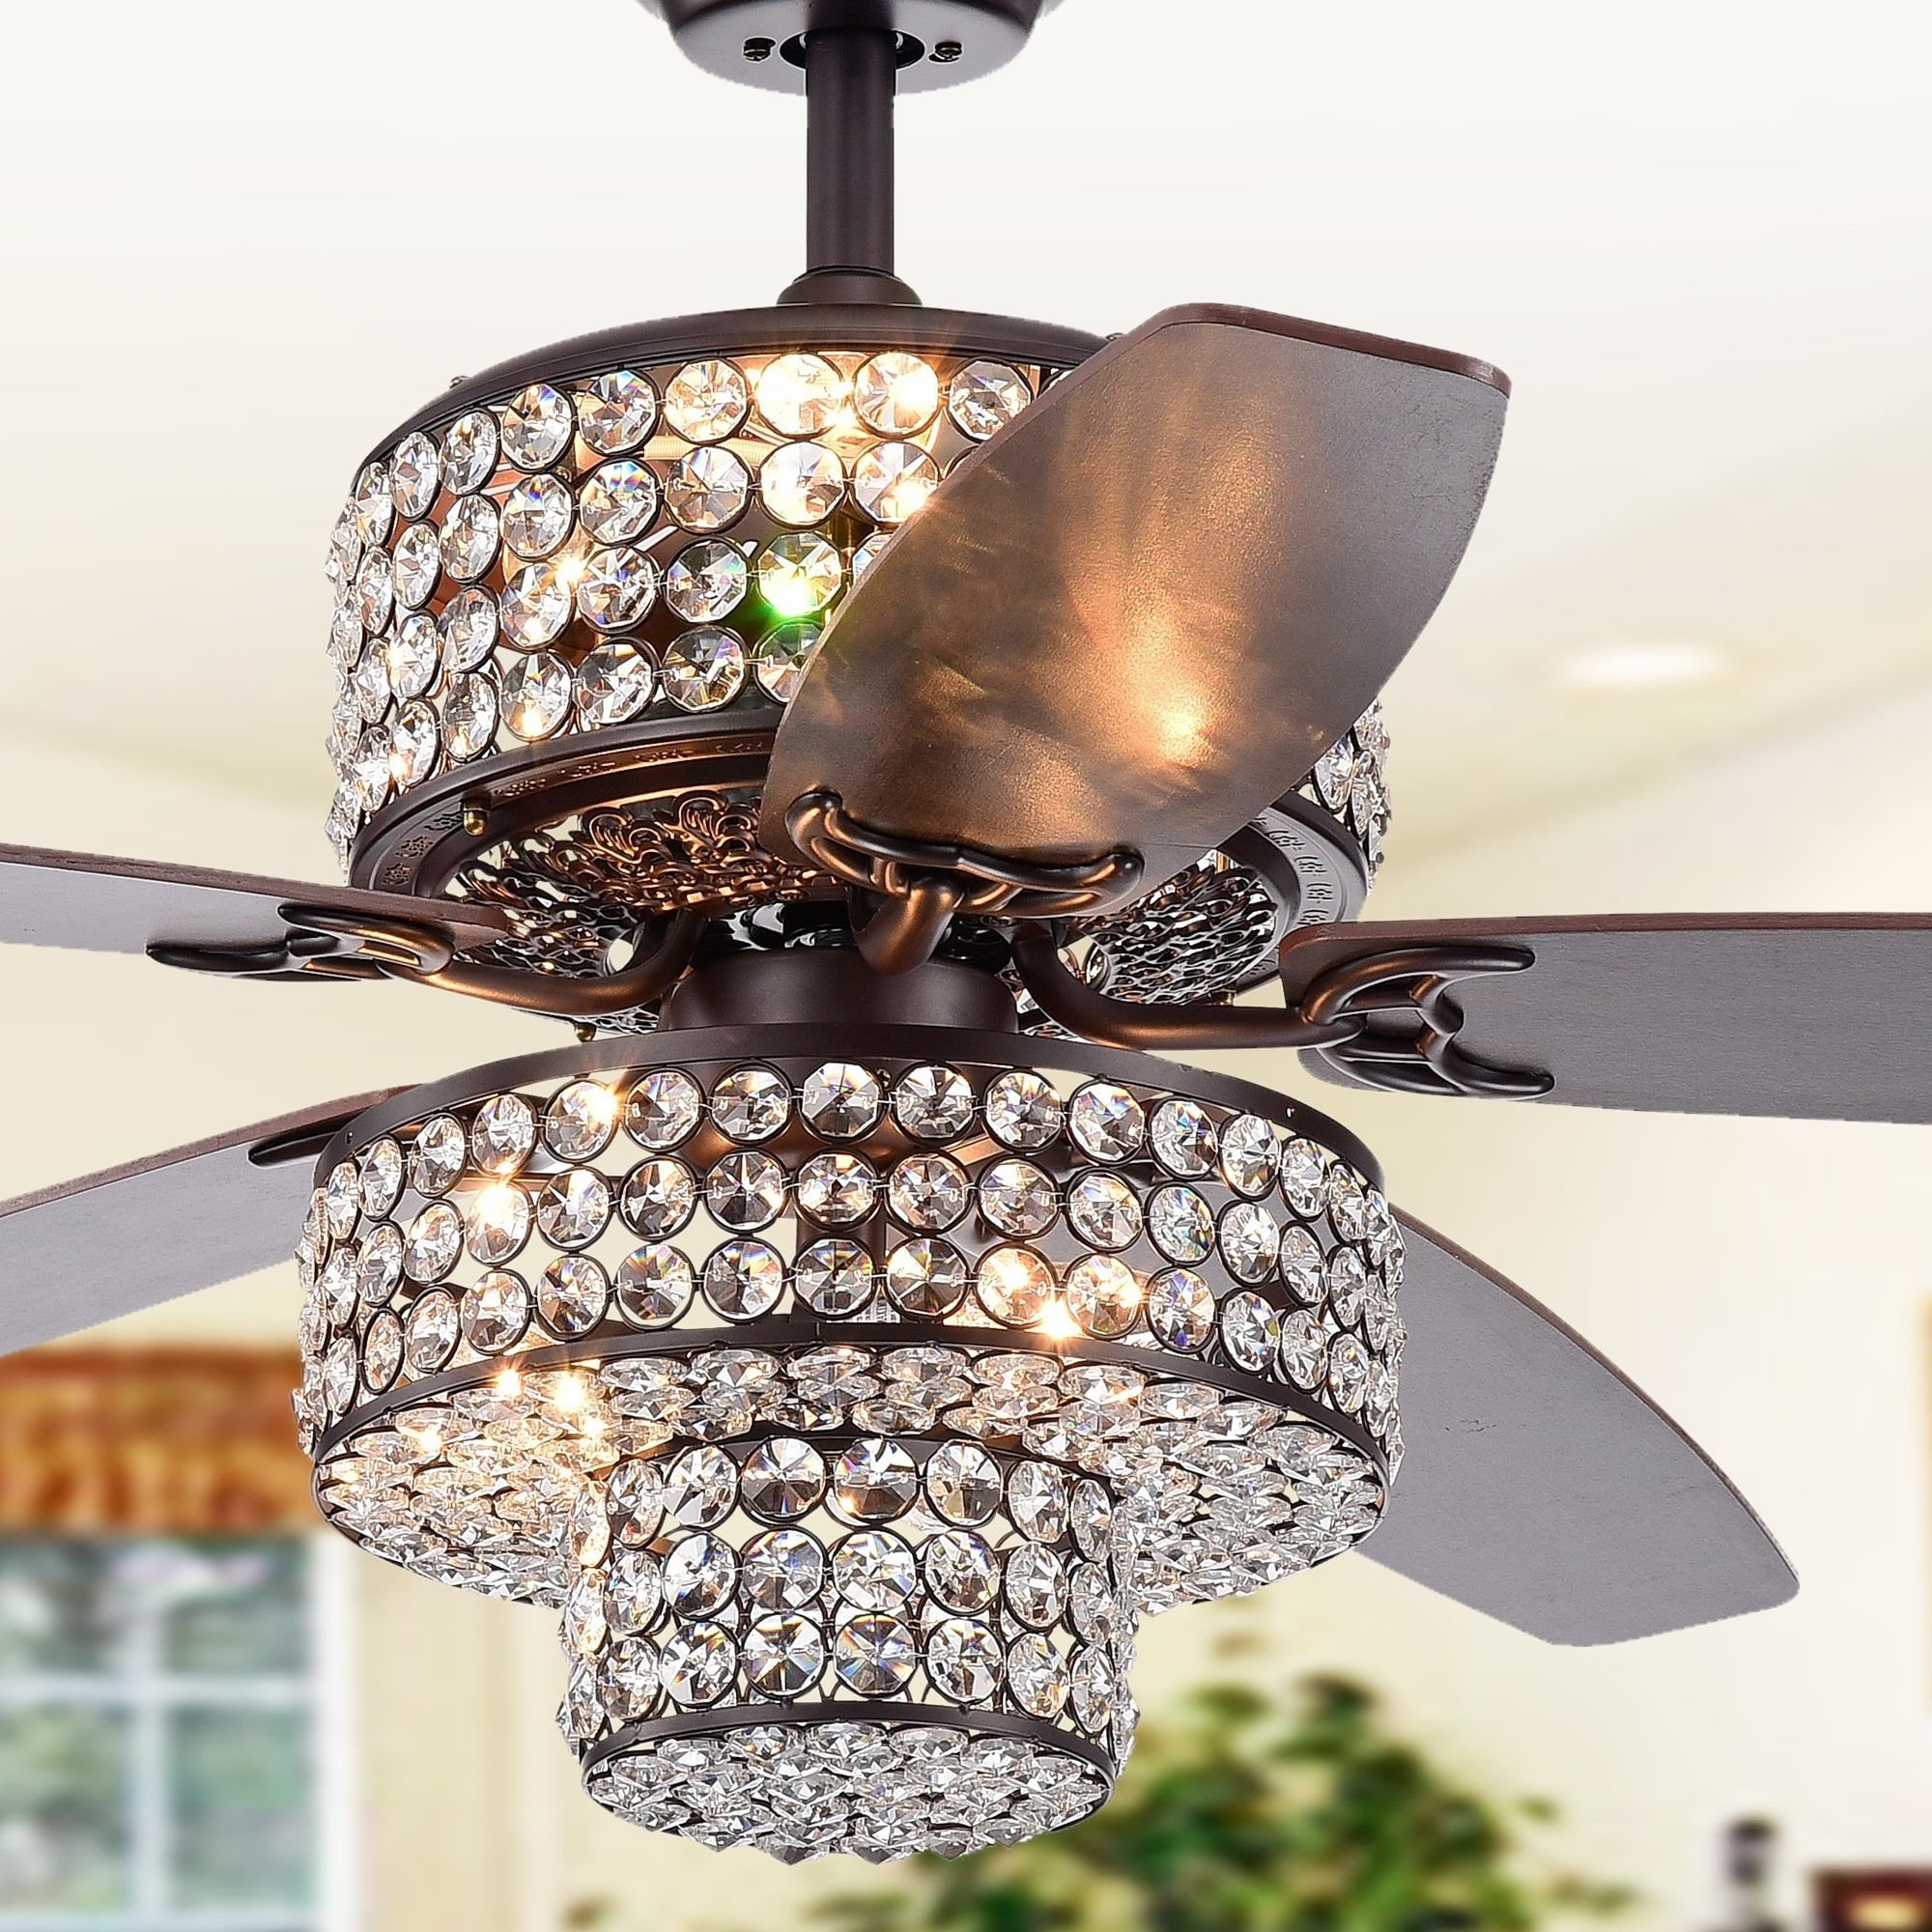 Rustic Ceiling Fan Light Fixtures Tierna 5 Blade 52 Inch Rustic Bronze Lighted Ceiling Fans Two Tiered Crystal Shade Remote Controlled 2 Color Option Blades